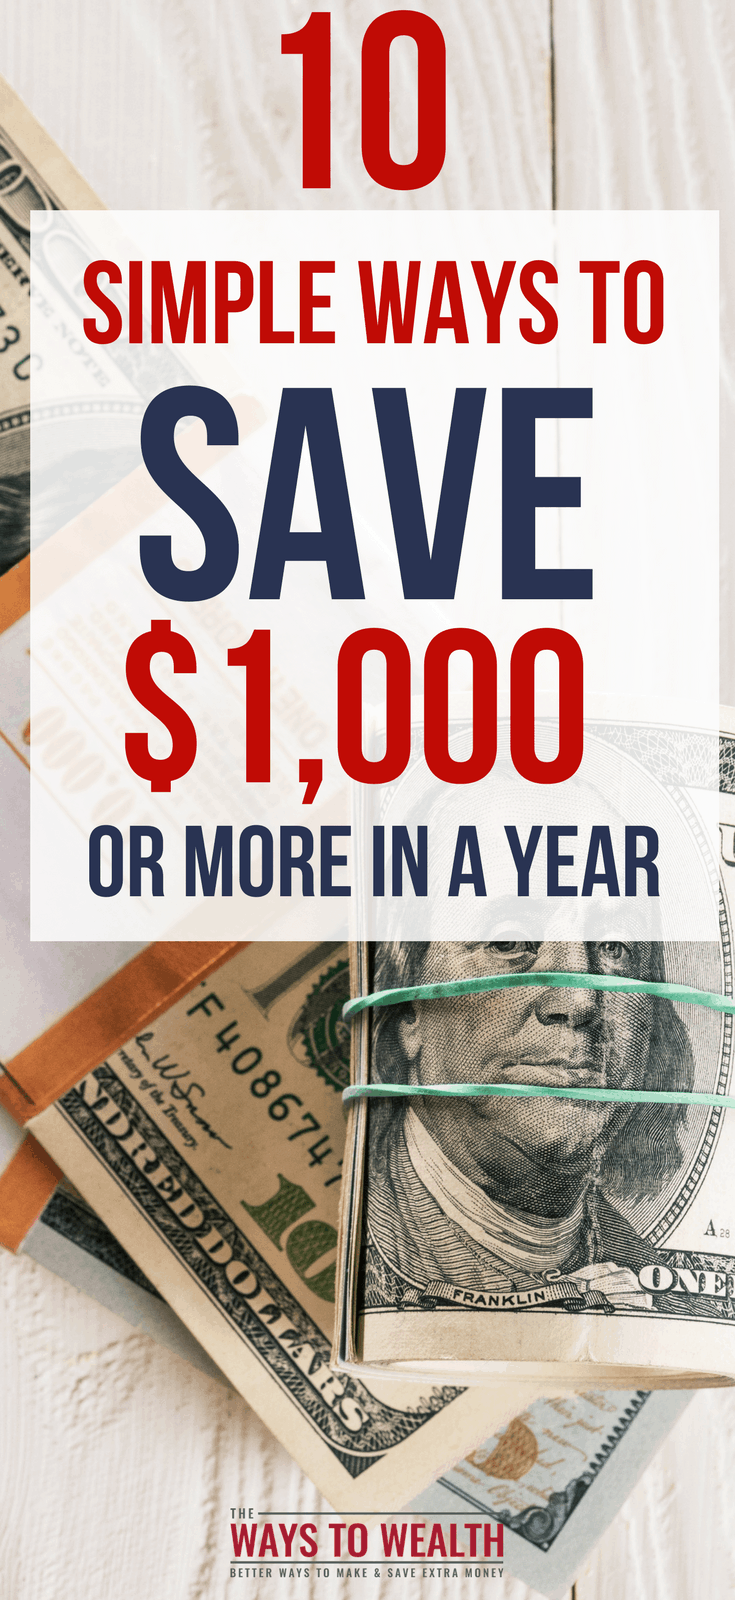 10 Quick & Easy Ways To Save $1,000 in a Year  Want to save $10,000 in a year? Here's 10 surprisingly simple things you can do, that will each save you $1,000 in a year.   how to save 10000 in a year | ways to save 1000 |   #thewaystowealth #savemoney #frugal